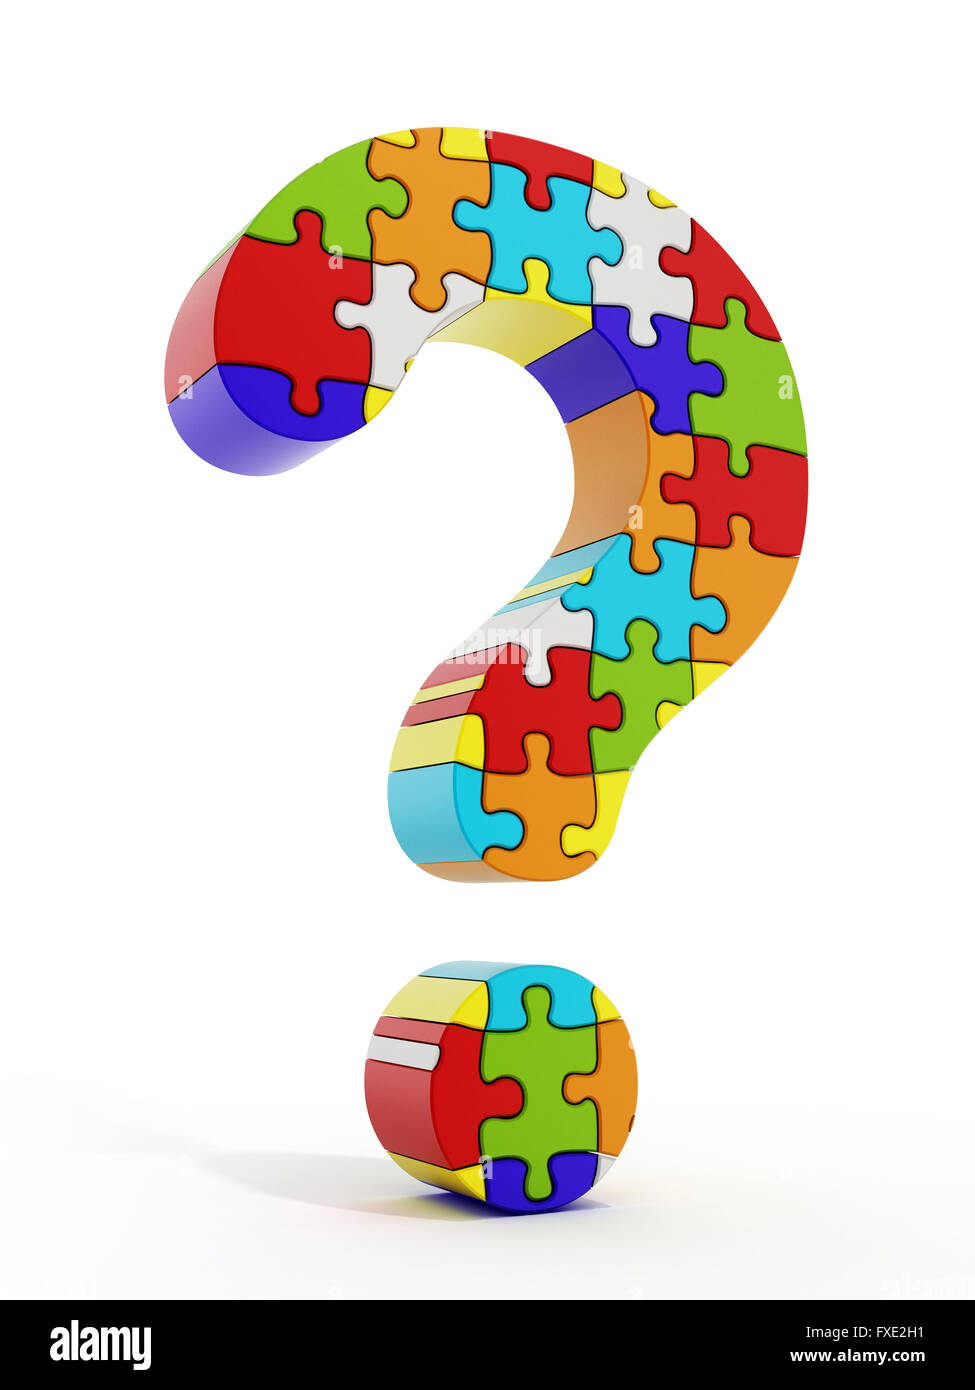 Jigsaw puzzle pieces forming a question mark isolated on white background - Stock Image